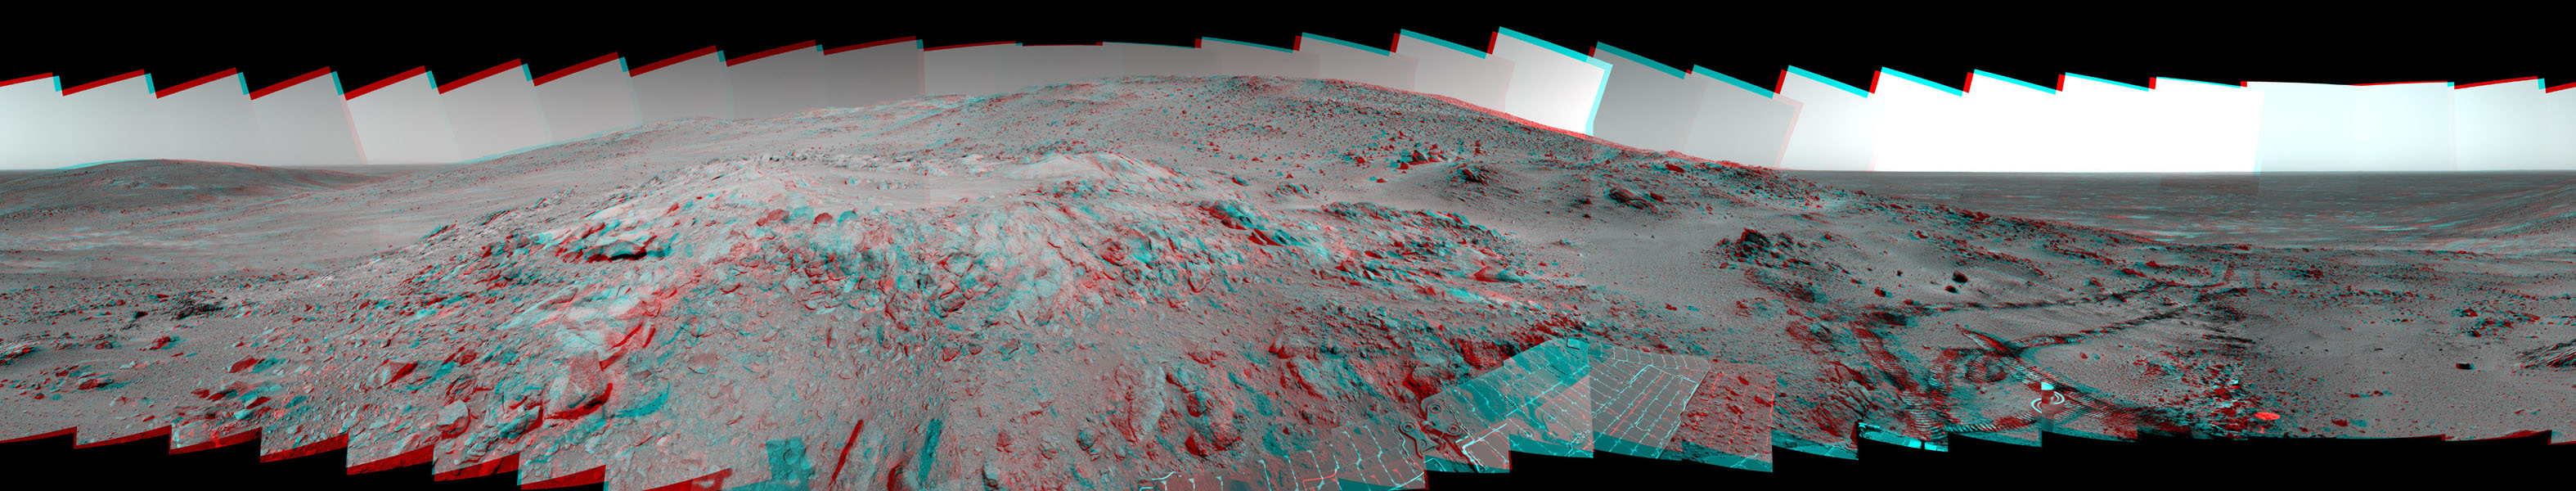 This is a stereoscopic version of NASA's Mars Exploration Rover Spirit's 'Lookout' panorama, acquired on Feb. 27 to Mar. 2, 2005. The view is from a position known informally as 'Larry's Lookout.' 3D glasses are necessary to view this image.